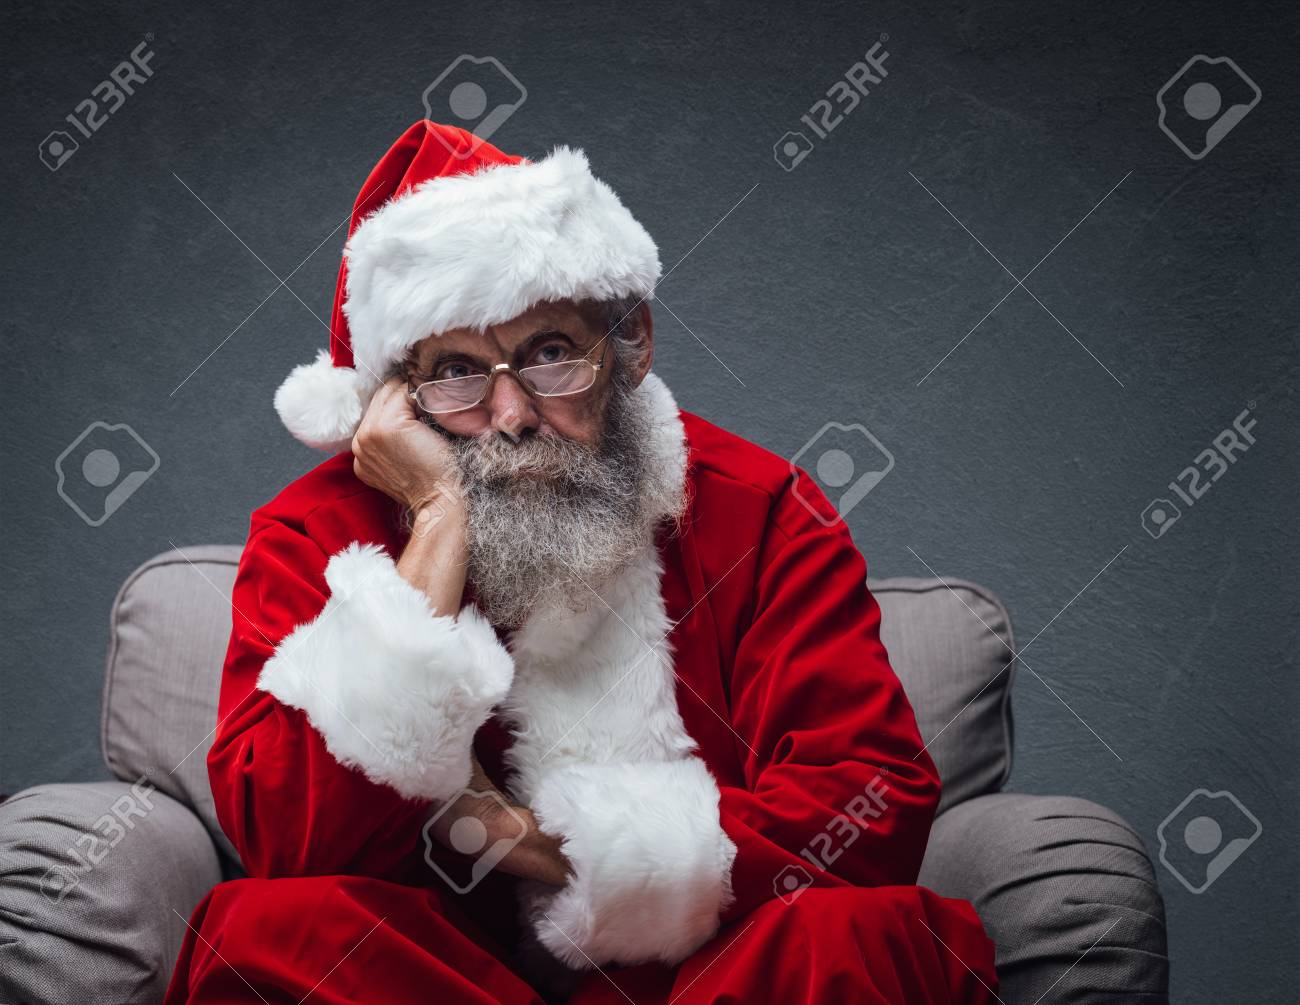 Lazy bored Santa Claus leaning on his hand and relaxing on the armchair, he is waiting for Christmas - 89097221